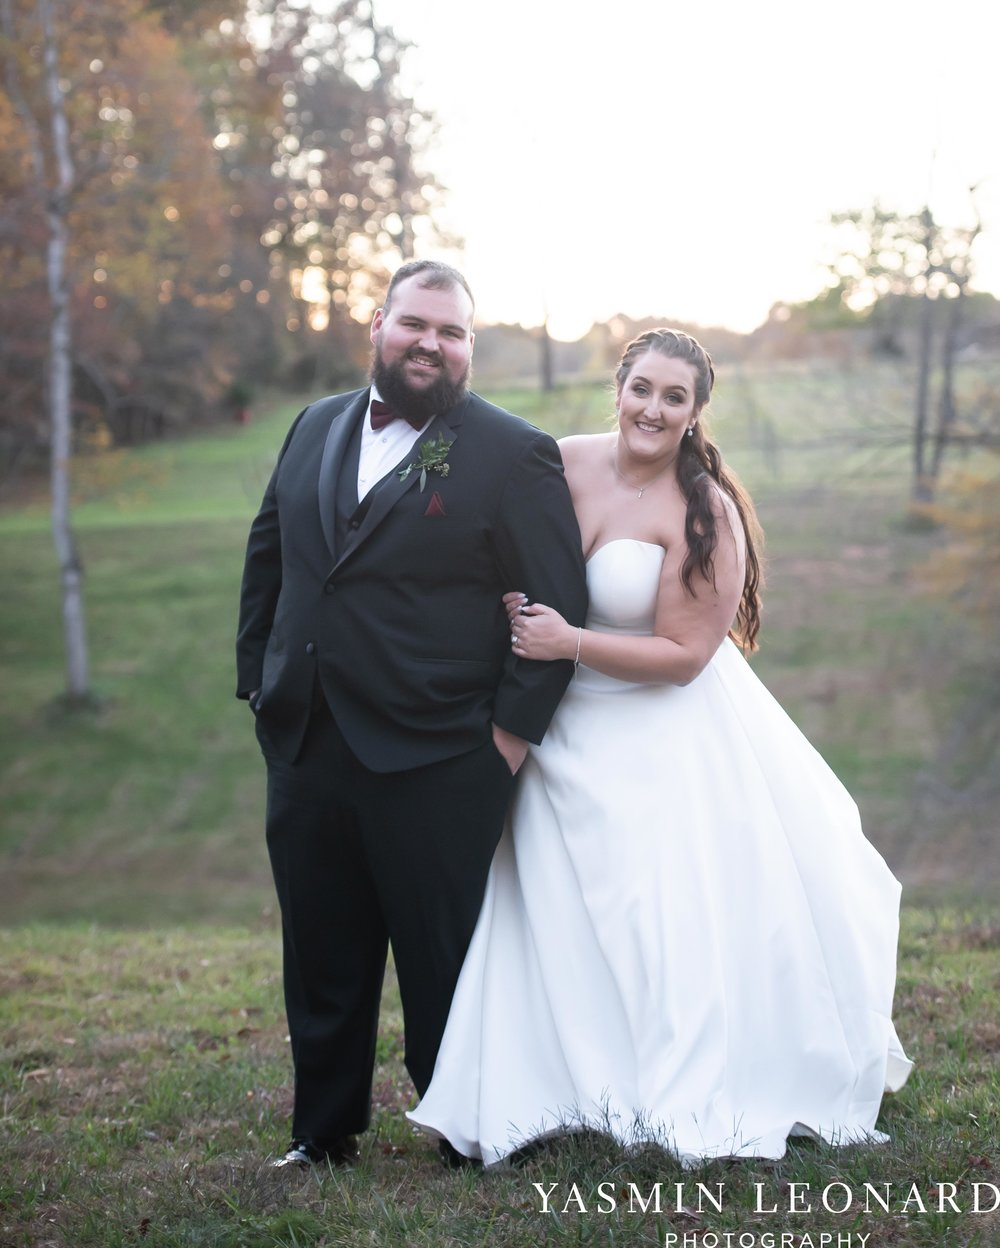 Wesley Memorial United Methodist Church - Old Homeplace Winery - High Point Weddings - High Point Wedding Photographer - NC Weddings - NC Barn Venue - Yasmin Leonard Photography-62.jpg